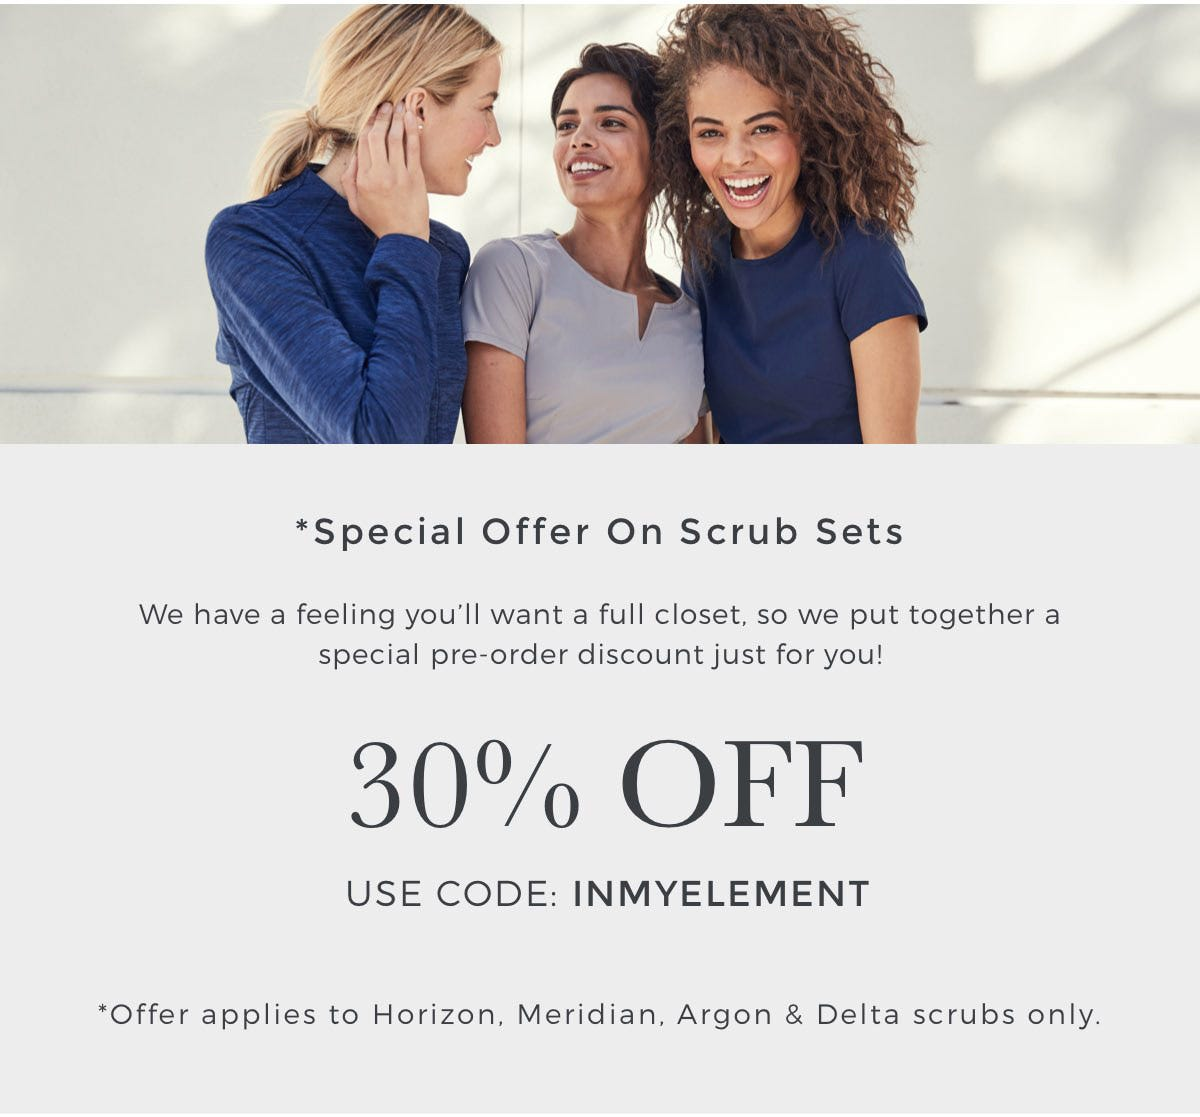 30% Off Element Scrubs Only With Special Coupon Code INMYELEMENT